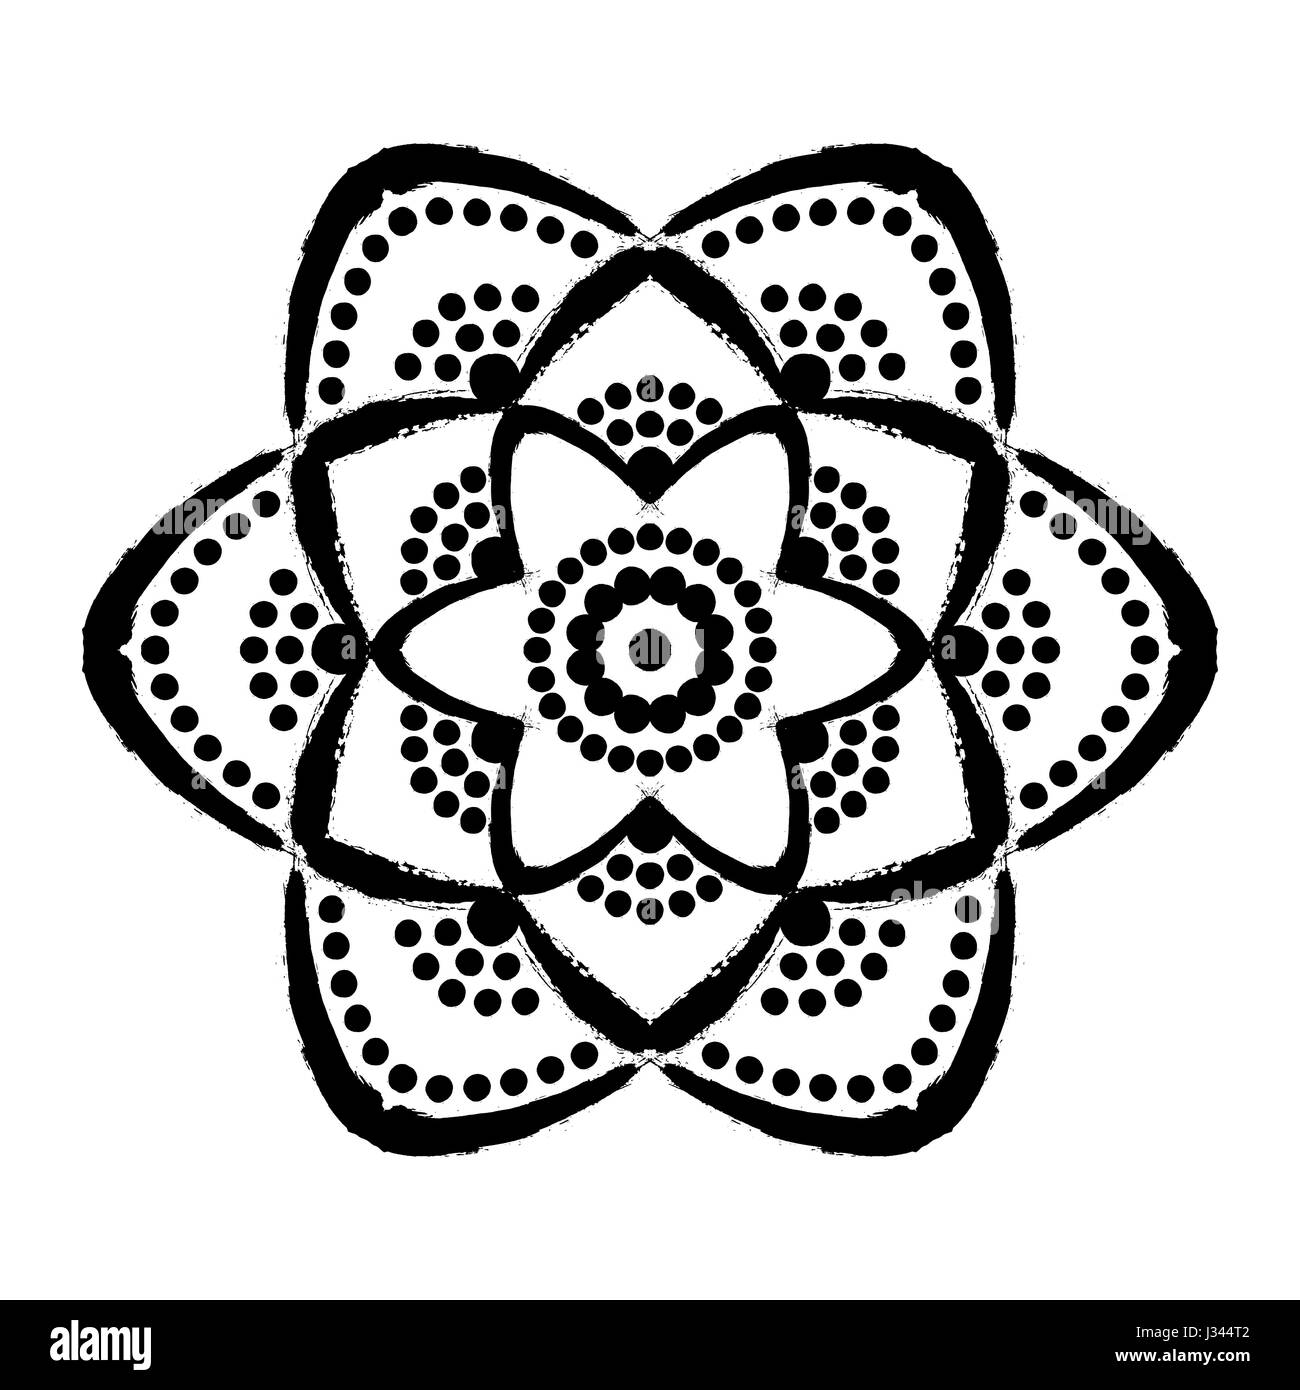 Painted Flower Dots Mandala Stock Vector Art & Illustration